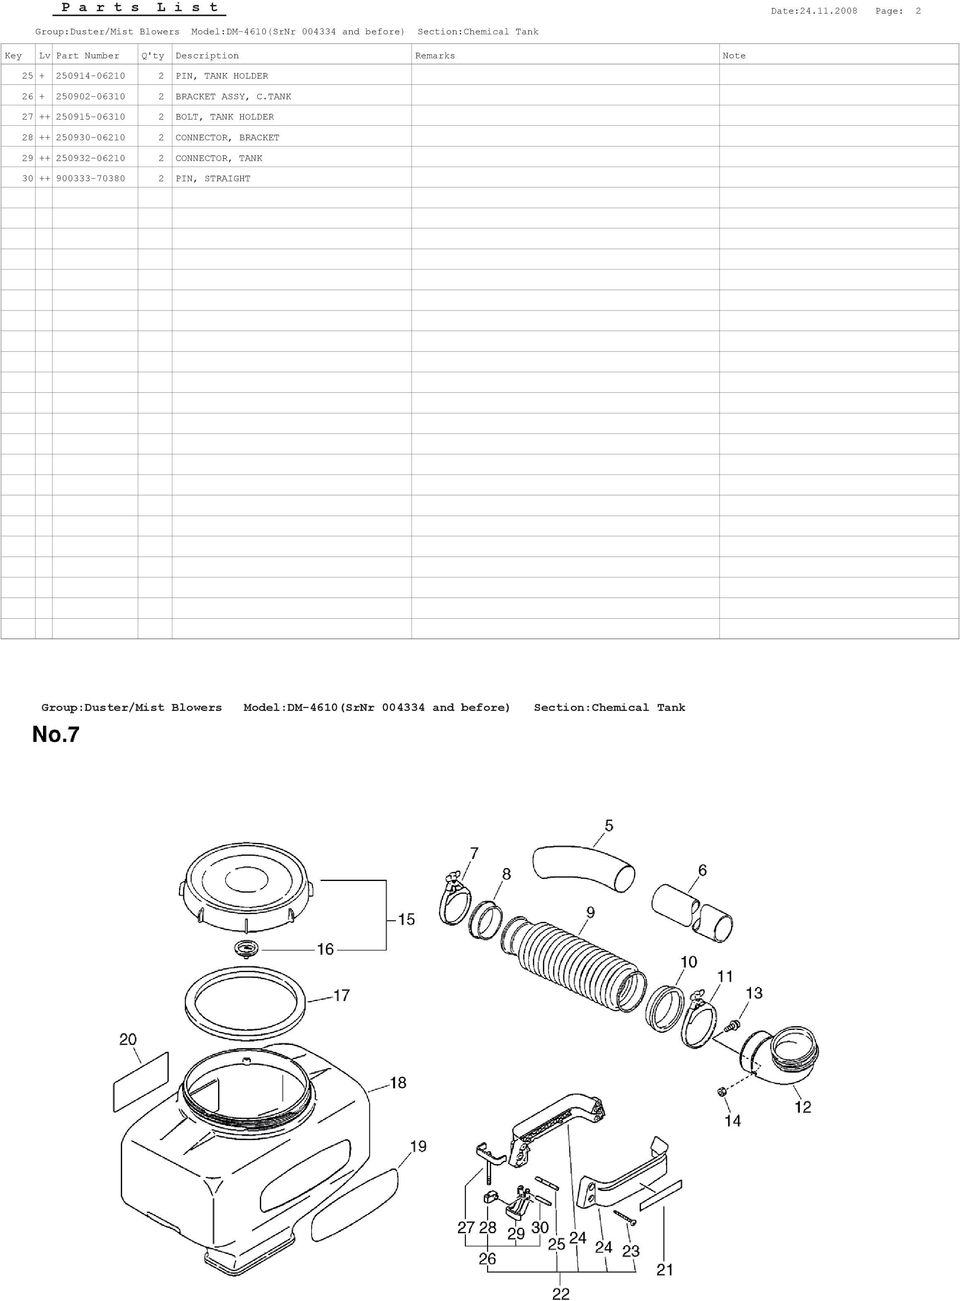 250914-06210 2 PIN, TANK HOLDER 26 + 250902-06310 2 BRACKET ASSY, C.